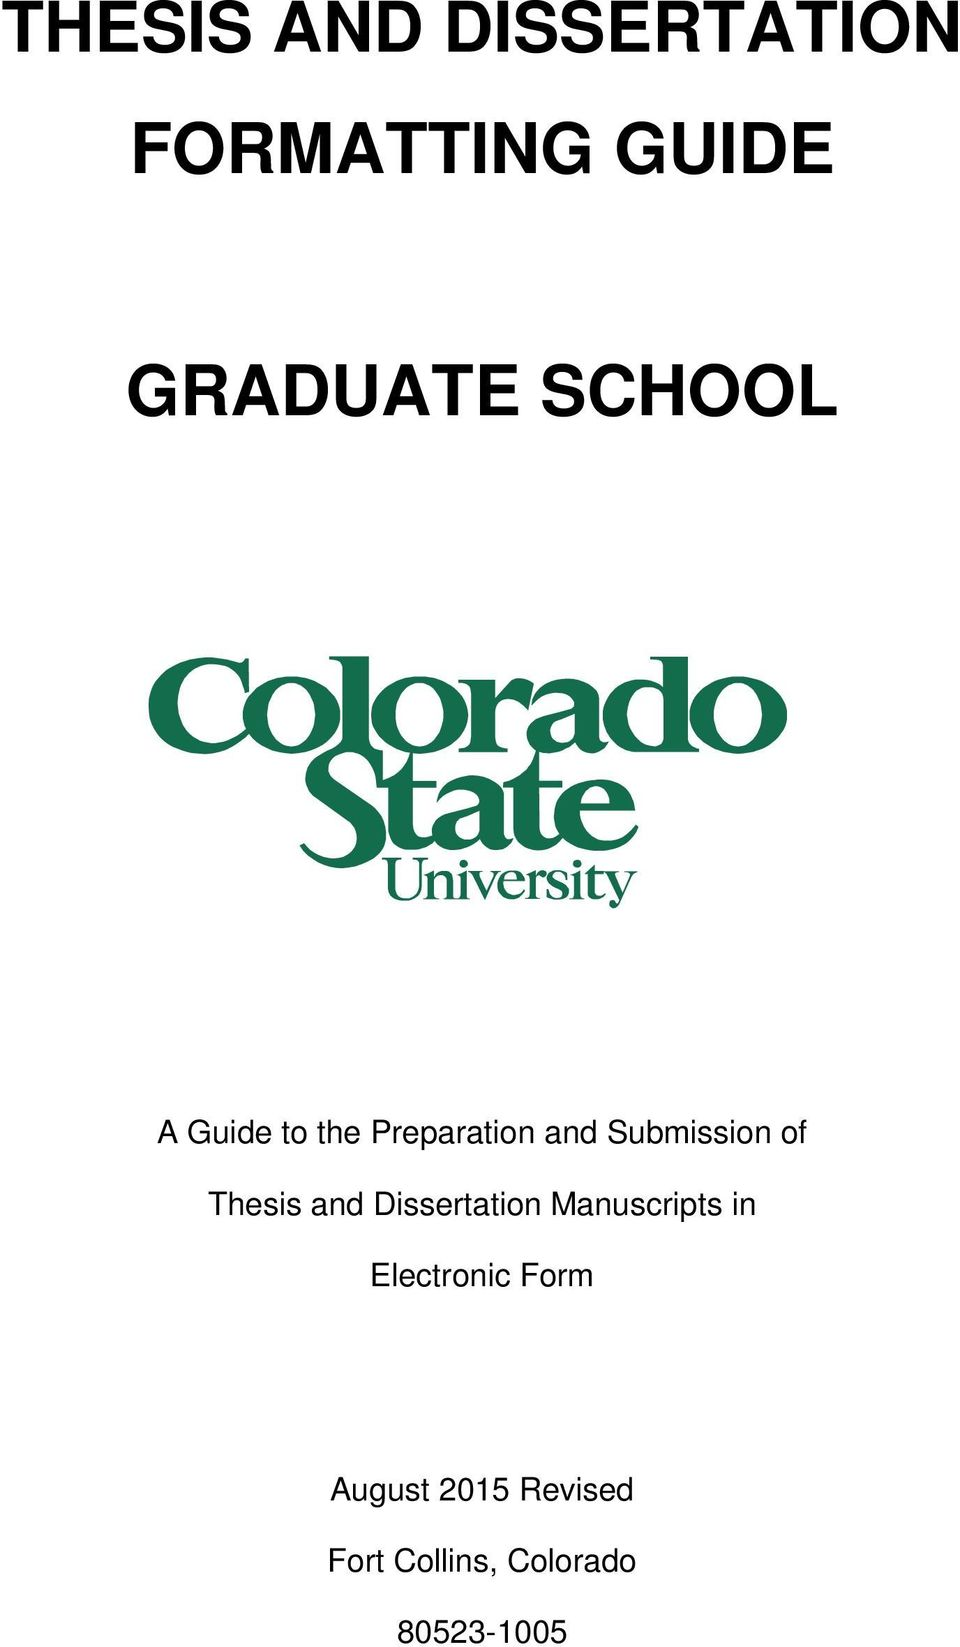 Thesis and Dissertation Manuscripts in Electronic